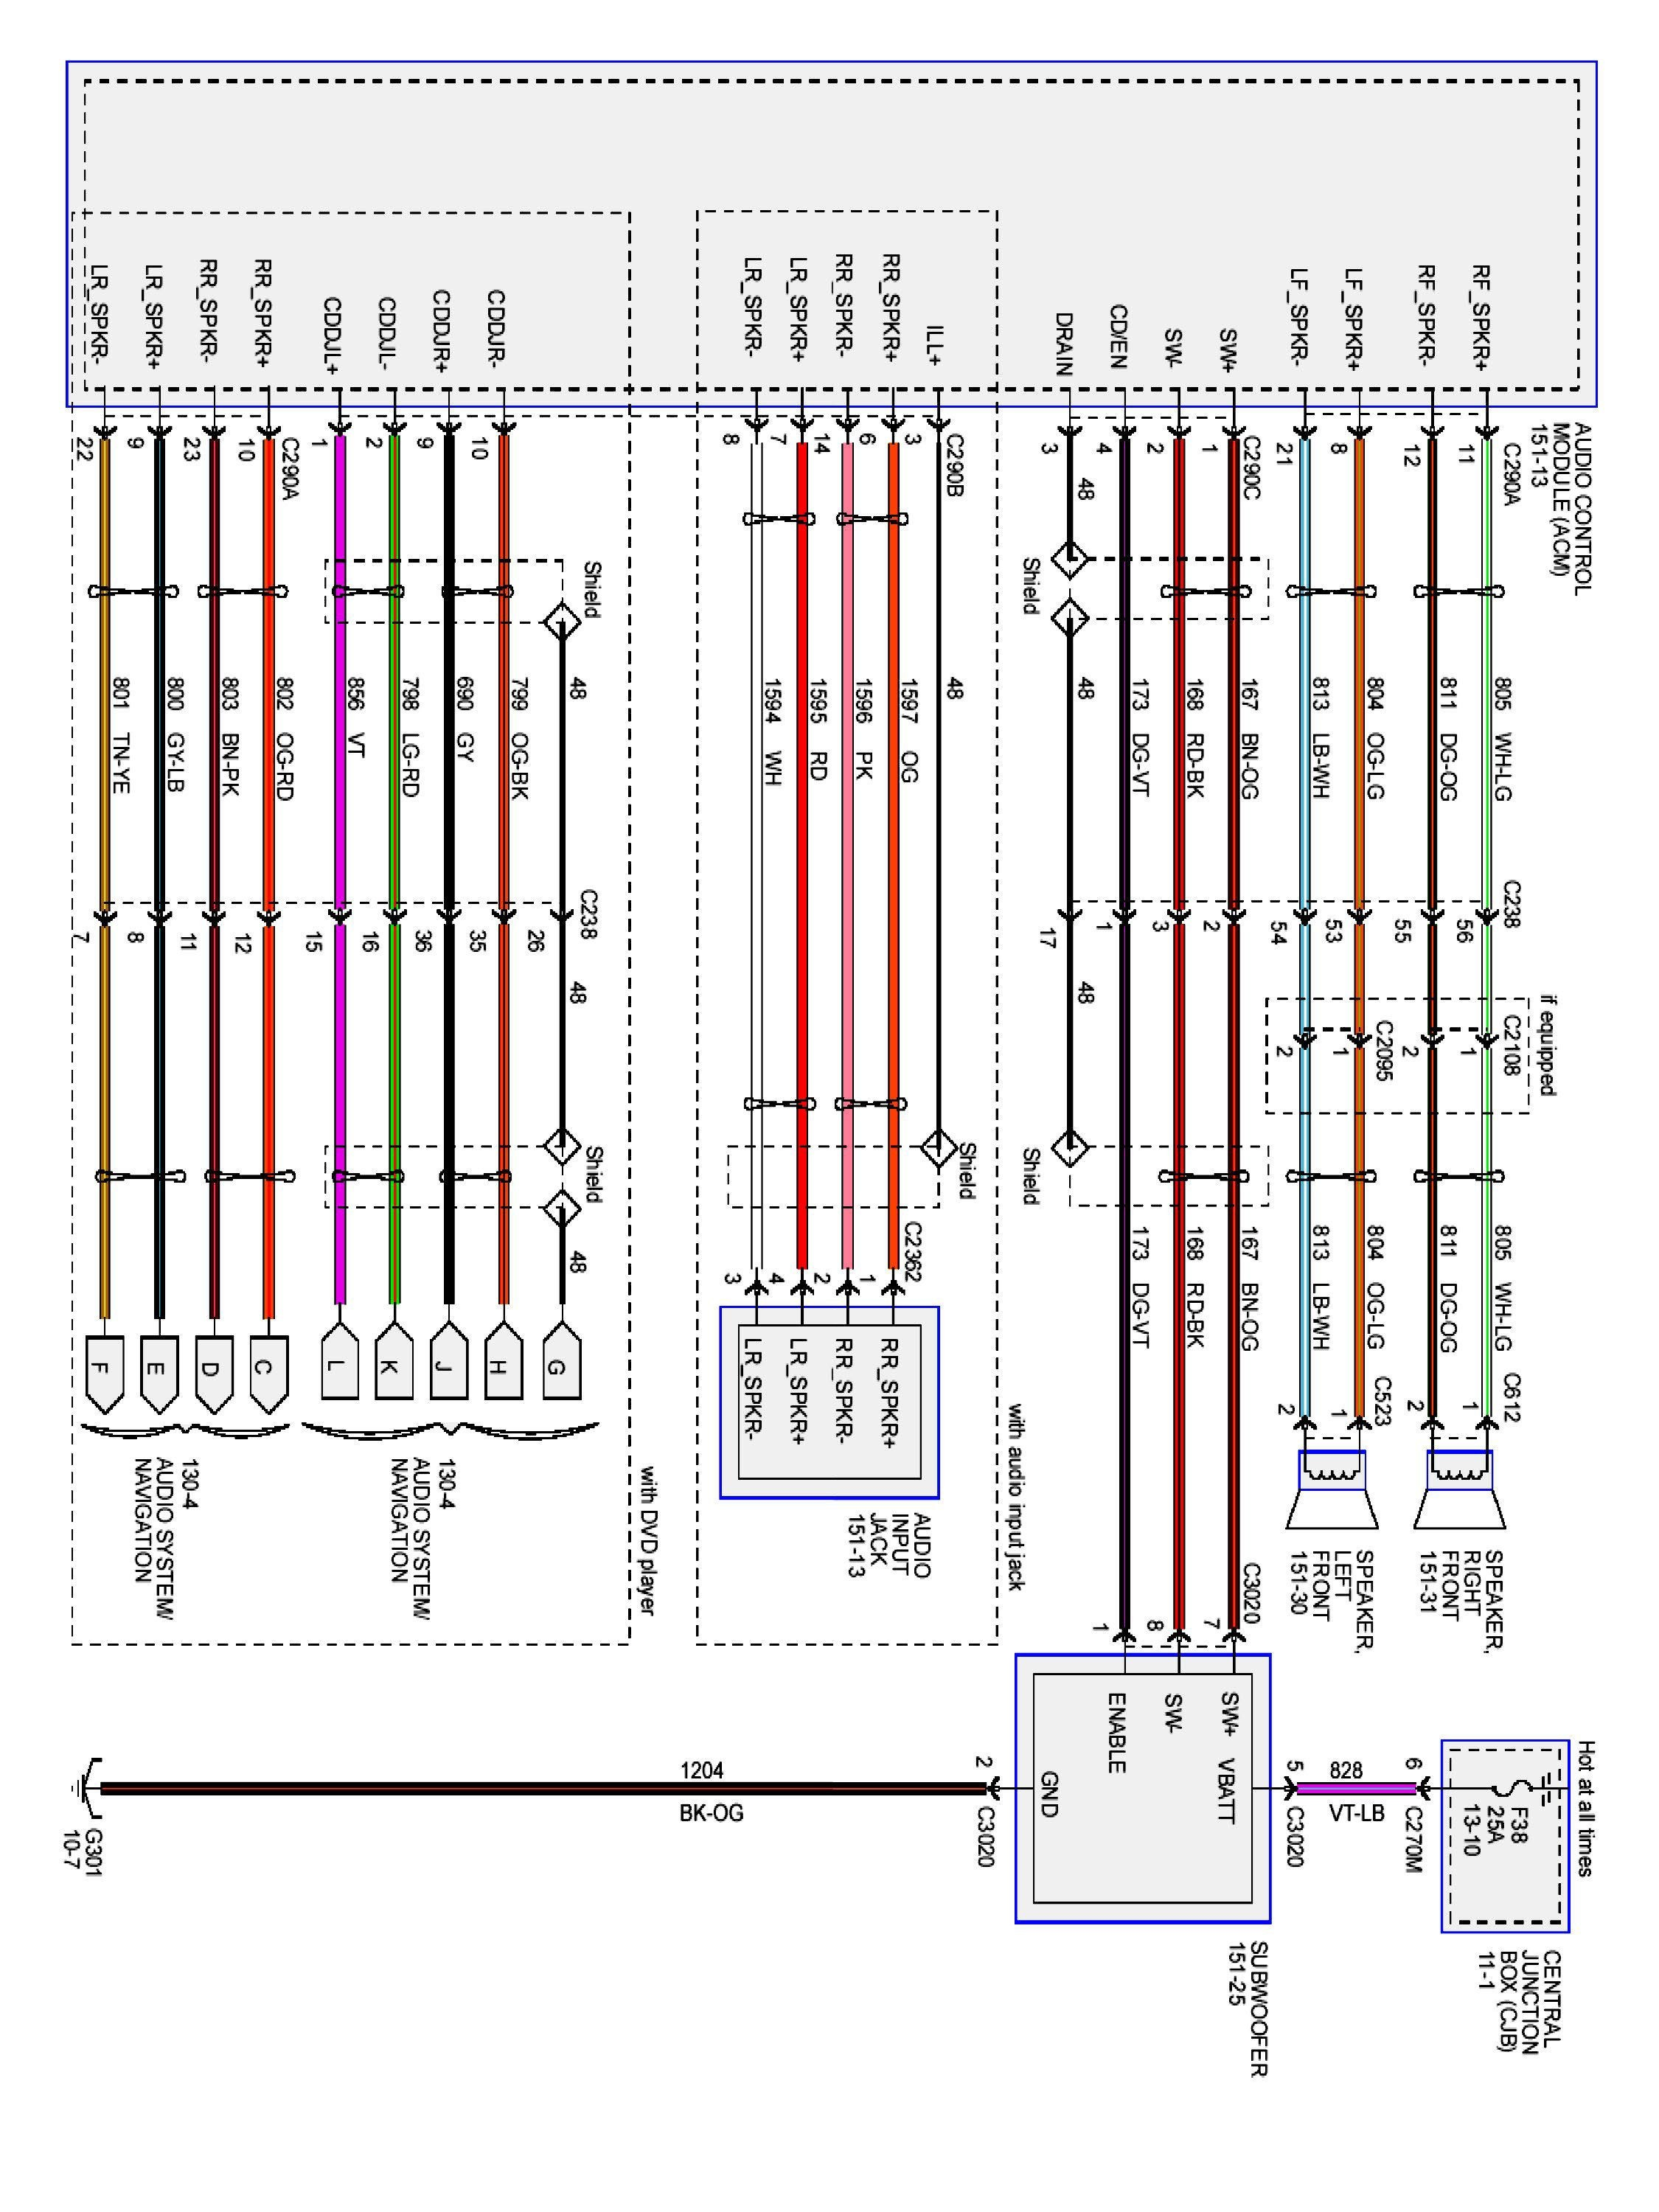 1993 ford F150 Wiring Diagram 2004 ford F150 Wiring Diagrams Of 1993 ford F150 Wiring Diagram